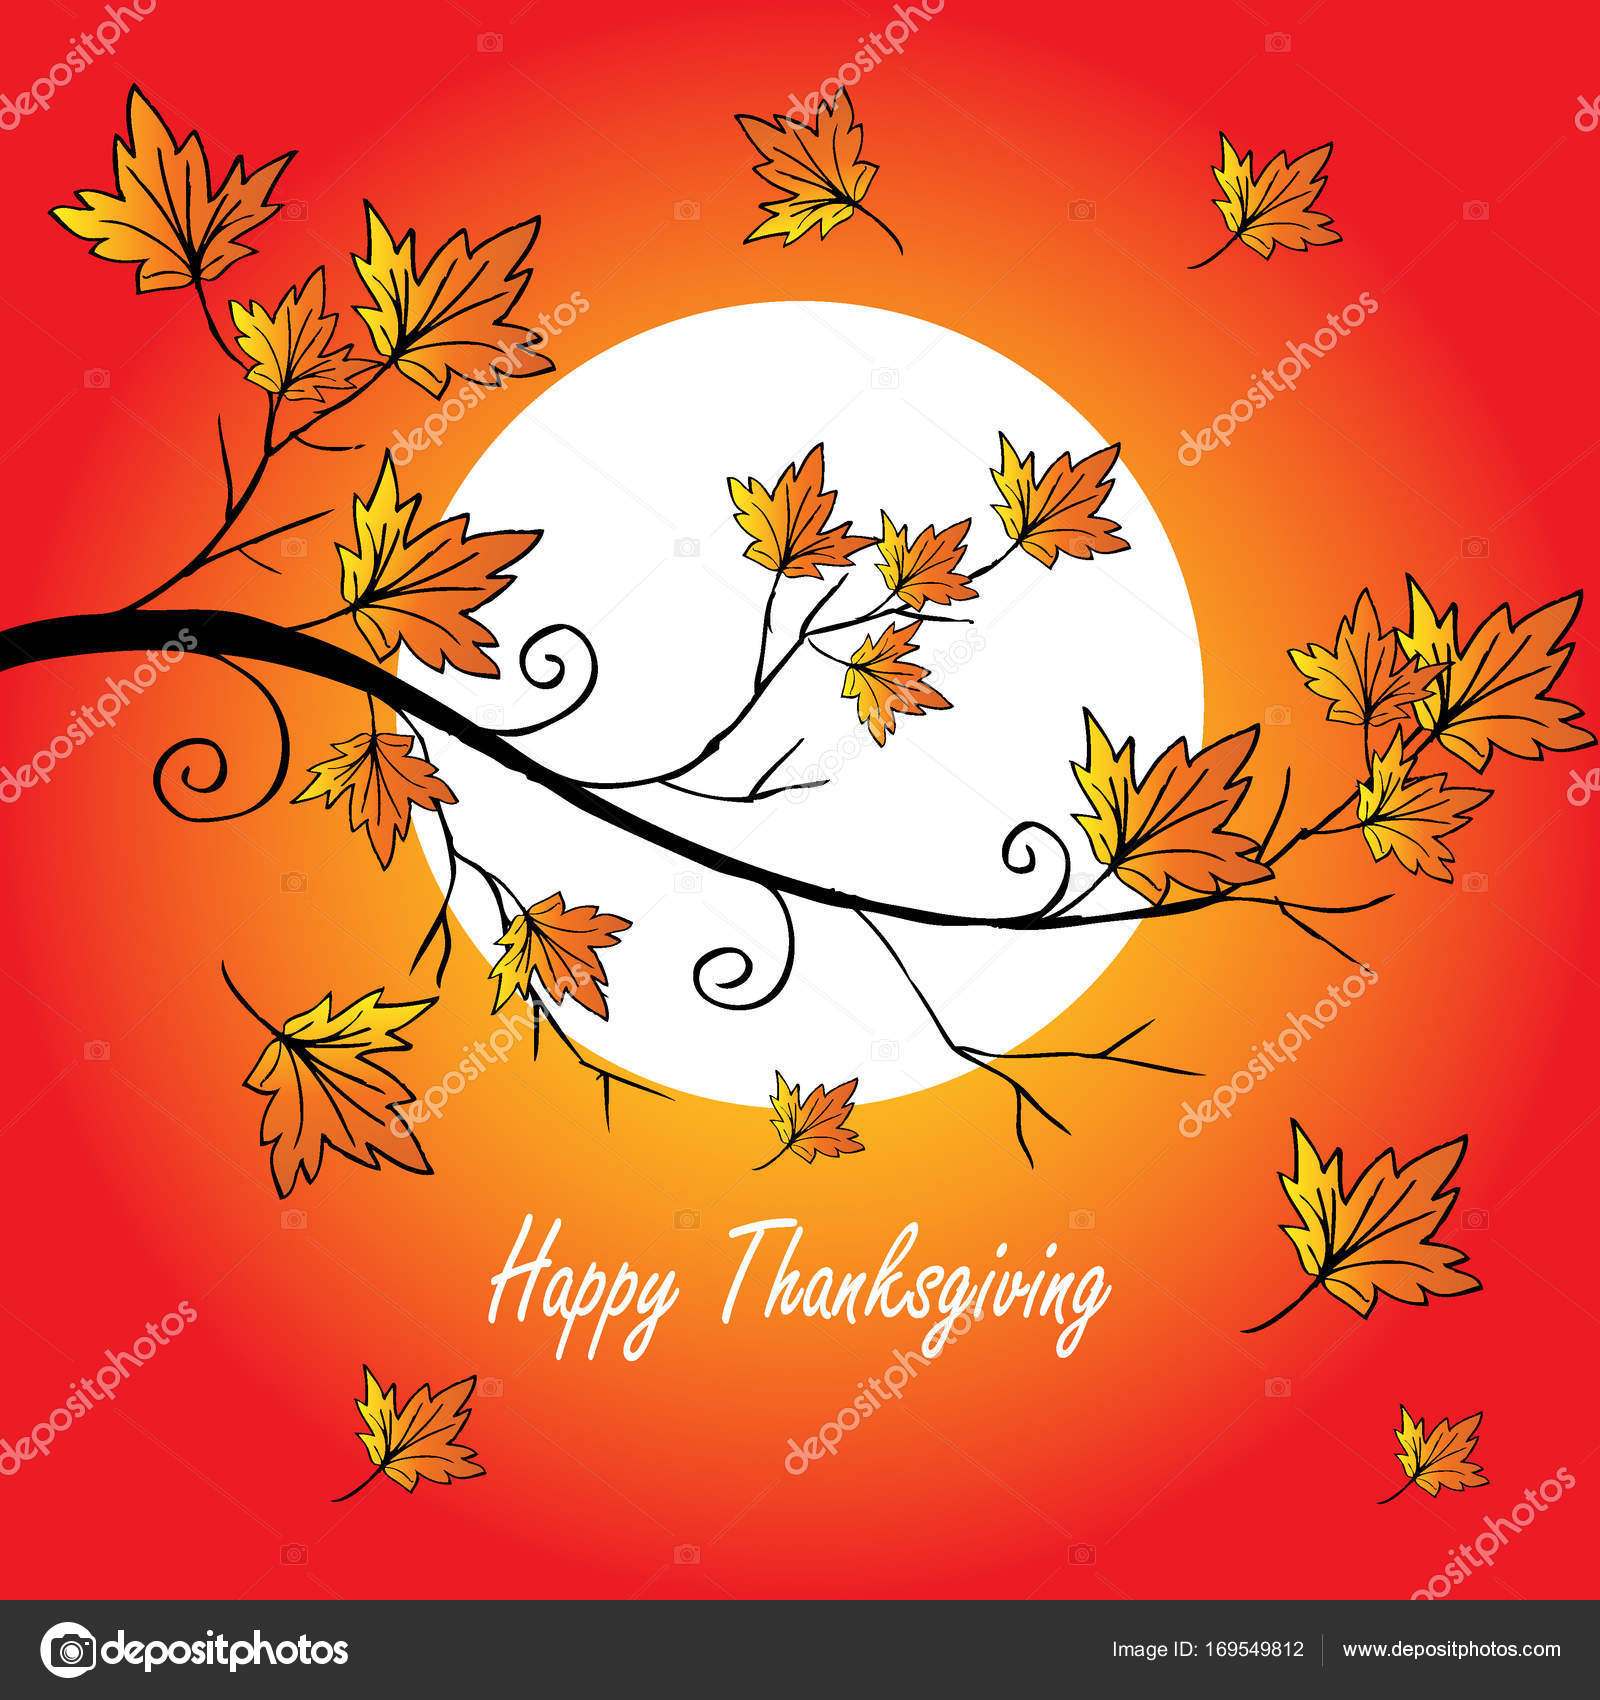 Happy thanksgiving card stock photo handini 169549812 happy thanksgiving card stock photo kristyandbryce Choice Image